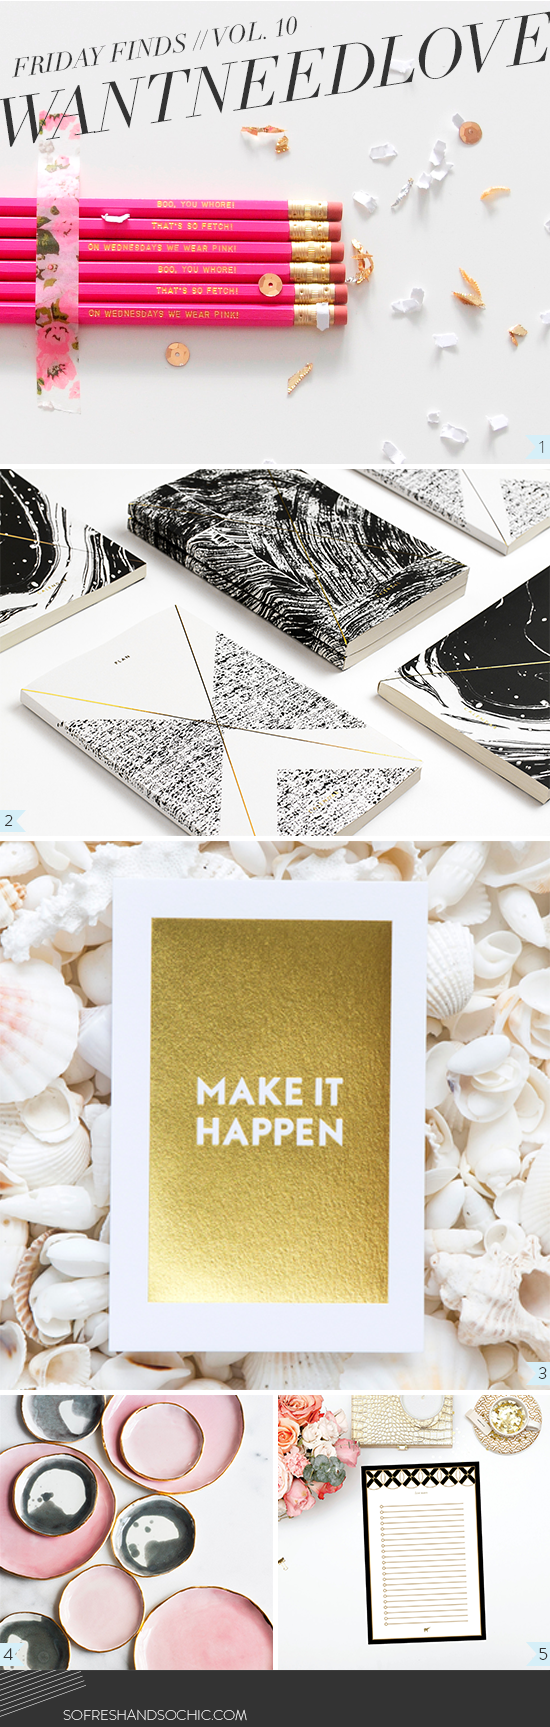 Gold Foil Desk Accessories from So Fresh & So Chic #sofreshandsochic #goldfoil #trending